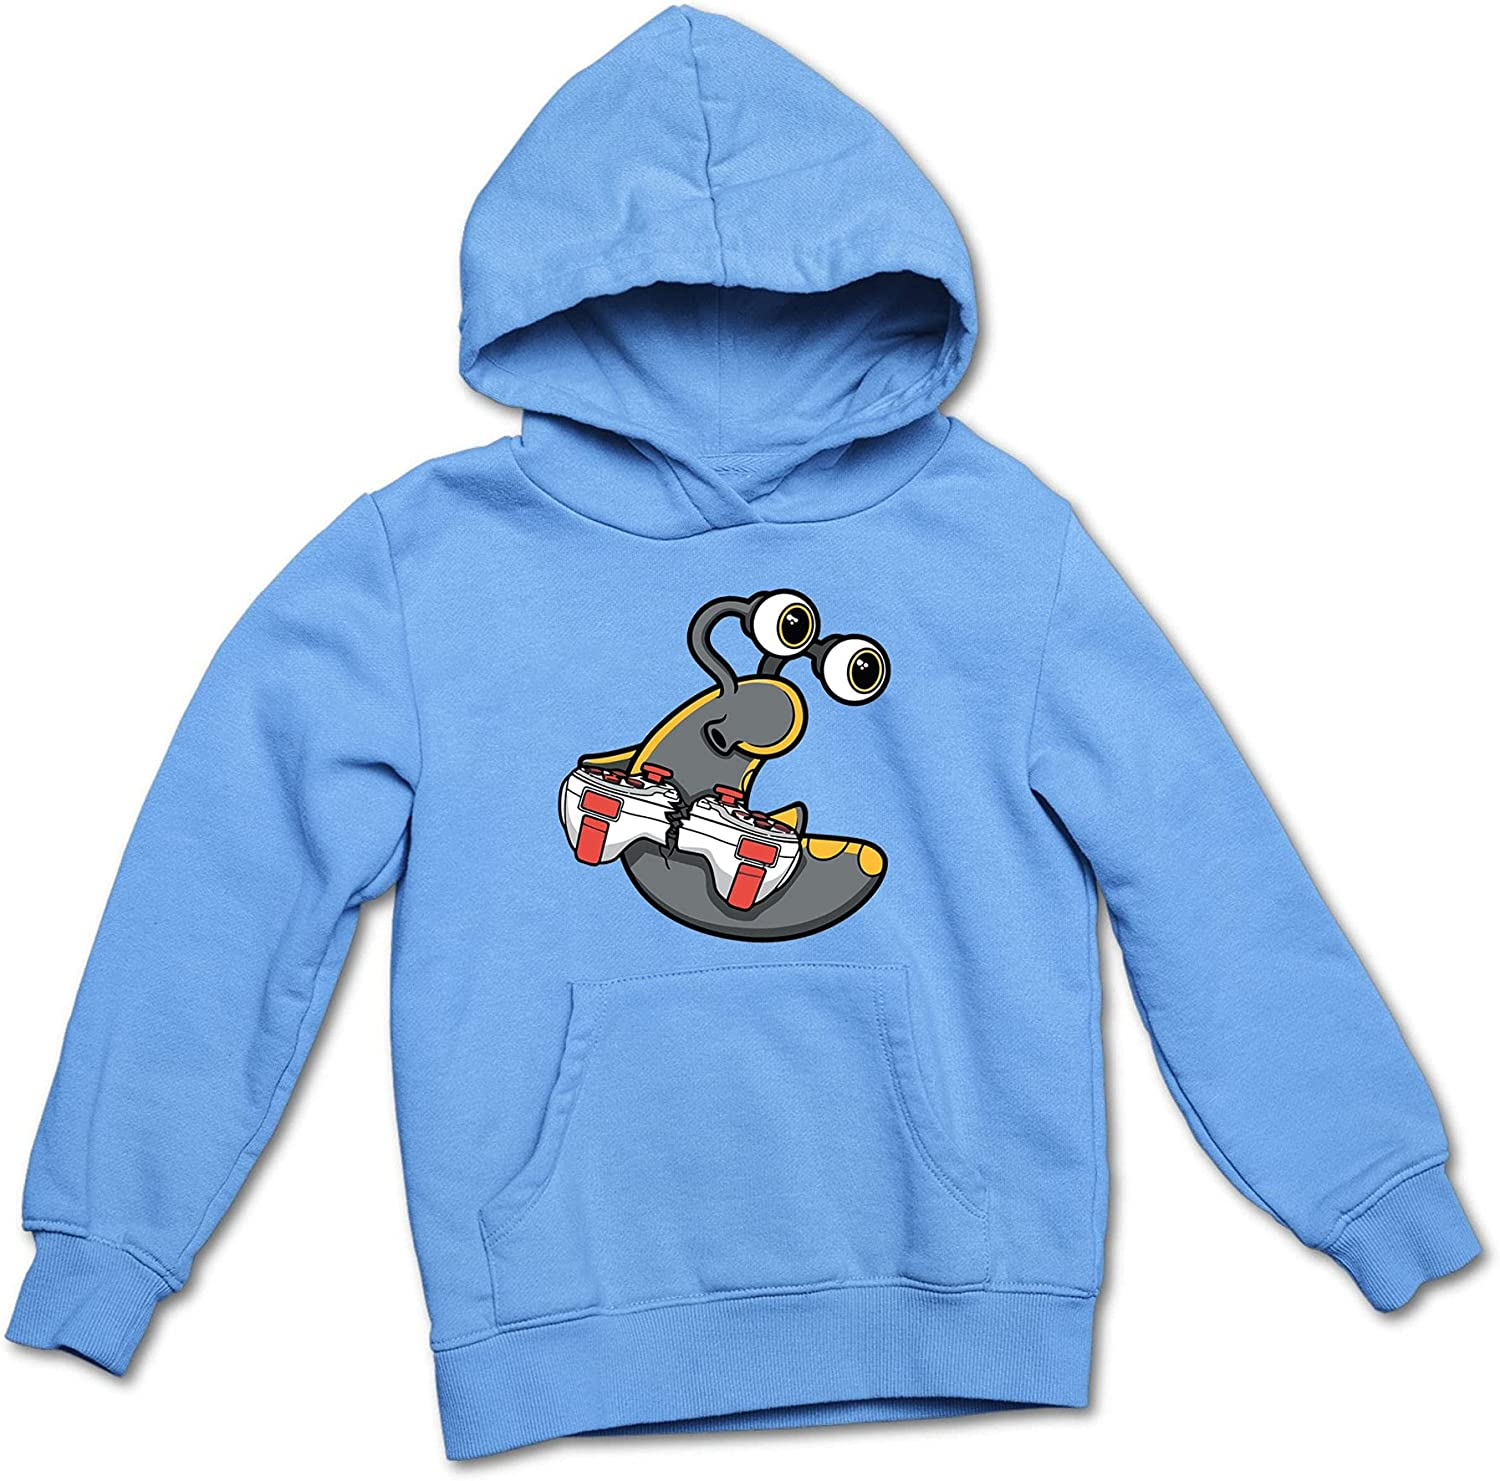 Ateesdas Slogoman Merch Attention brand The Youth Crazy Hoodie Cheap mail order specialty store